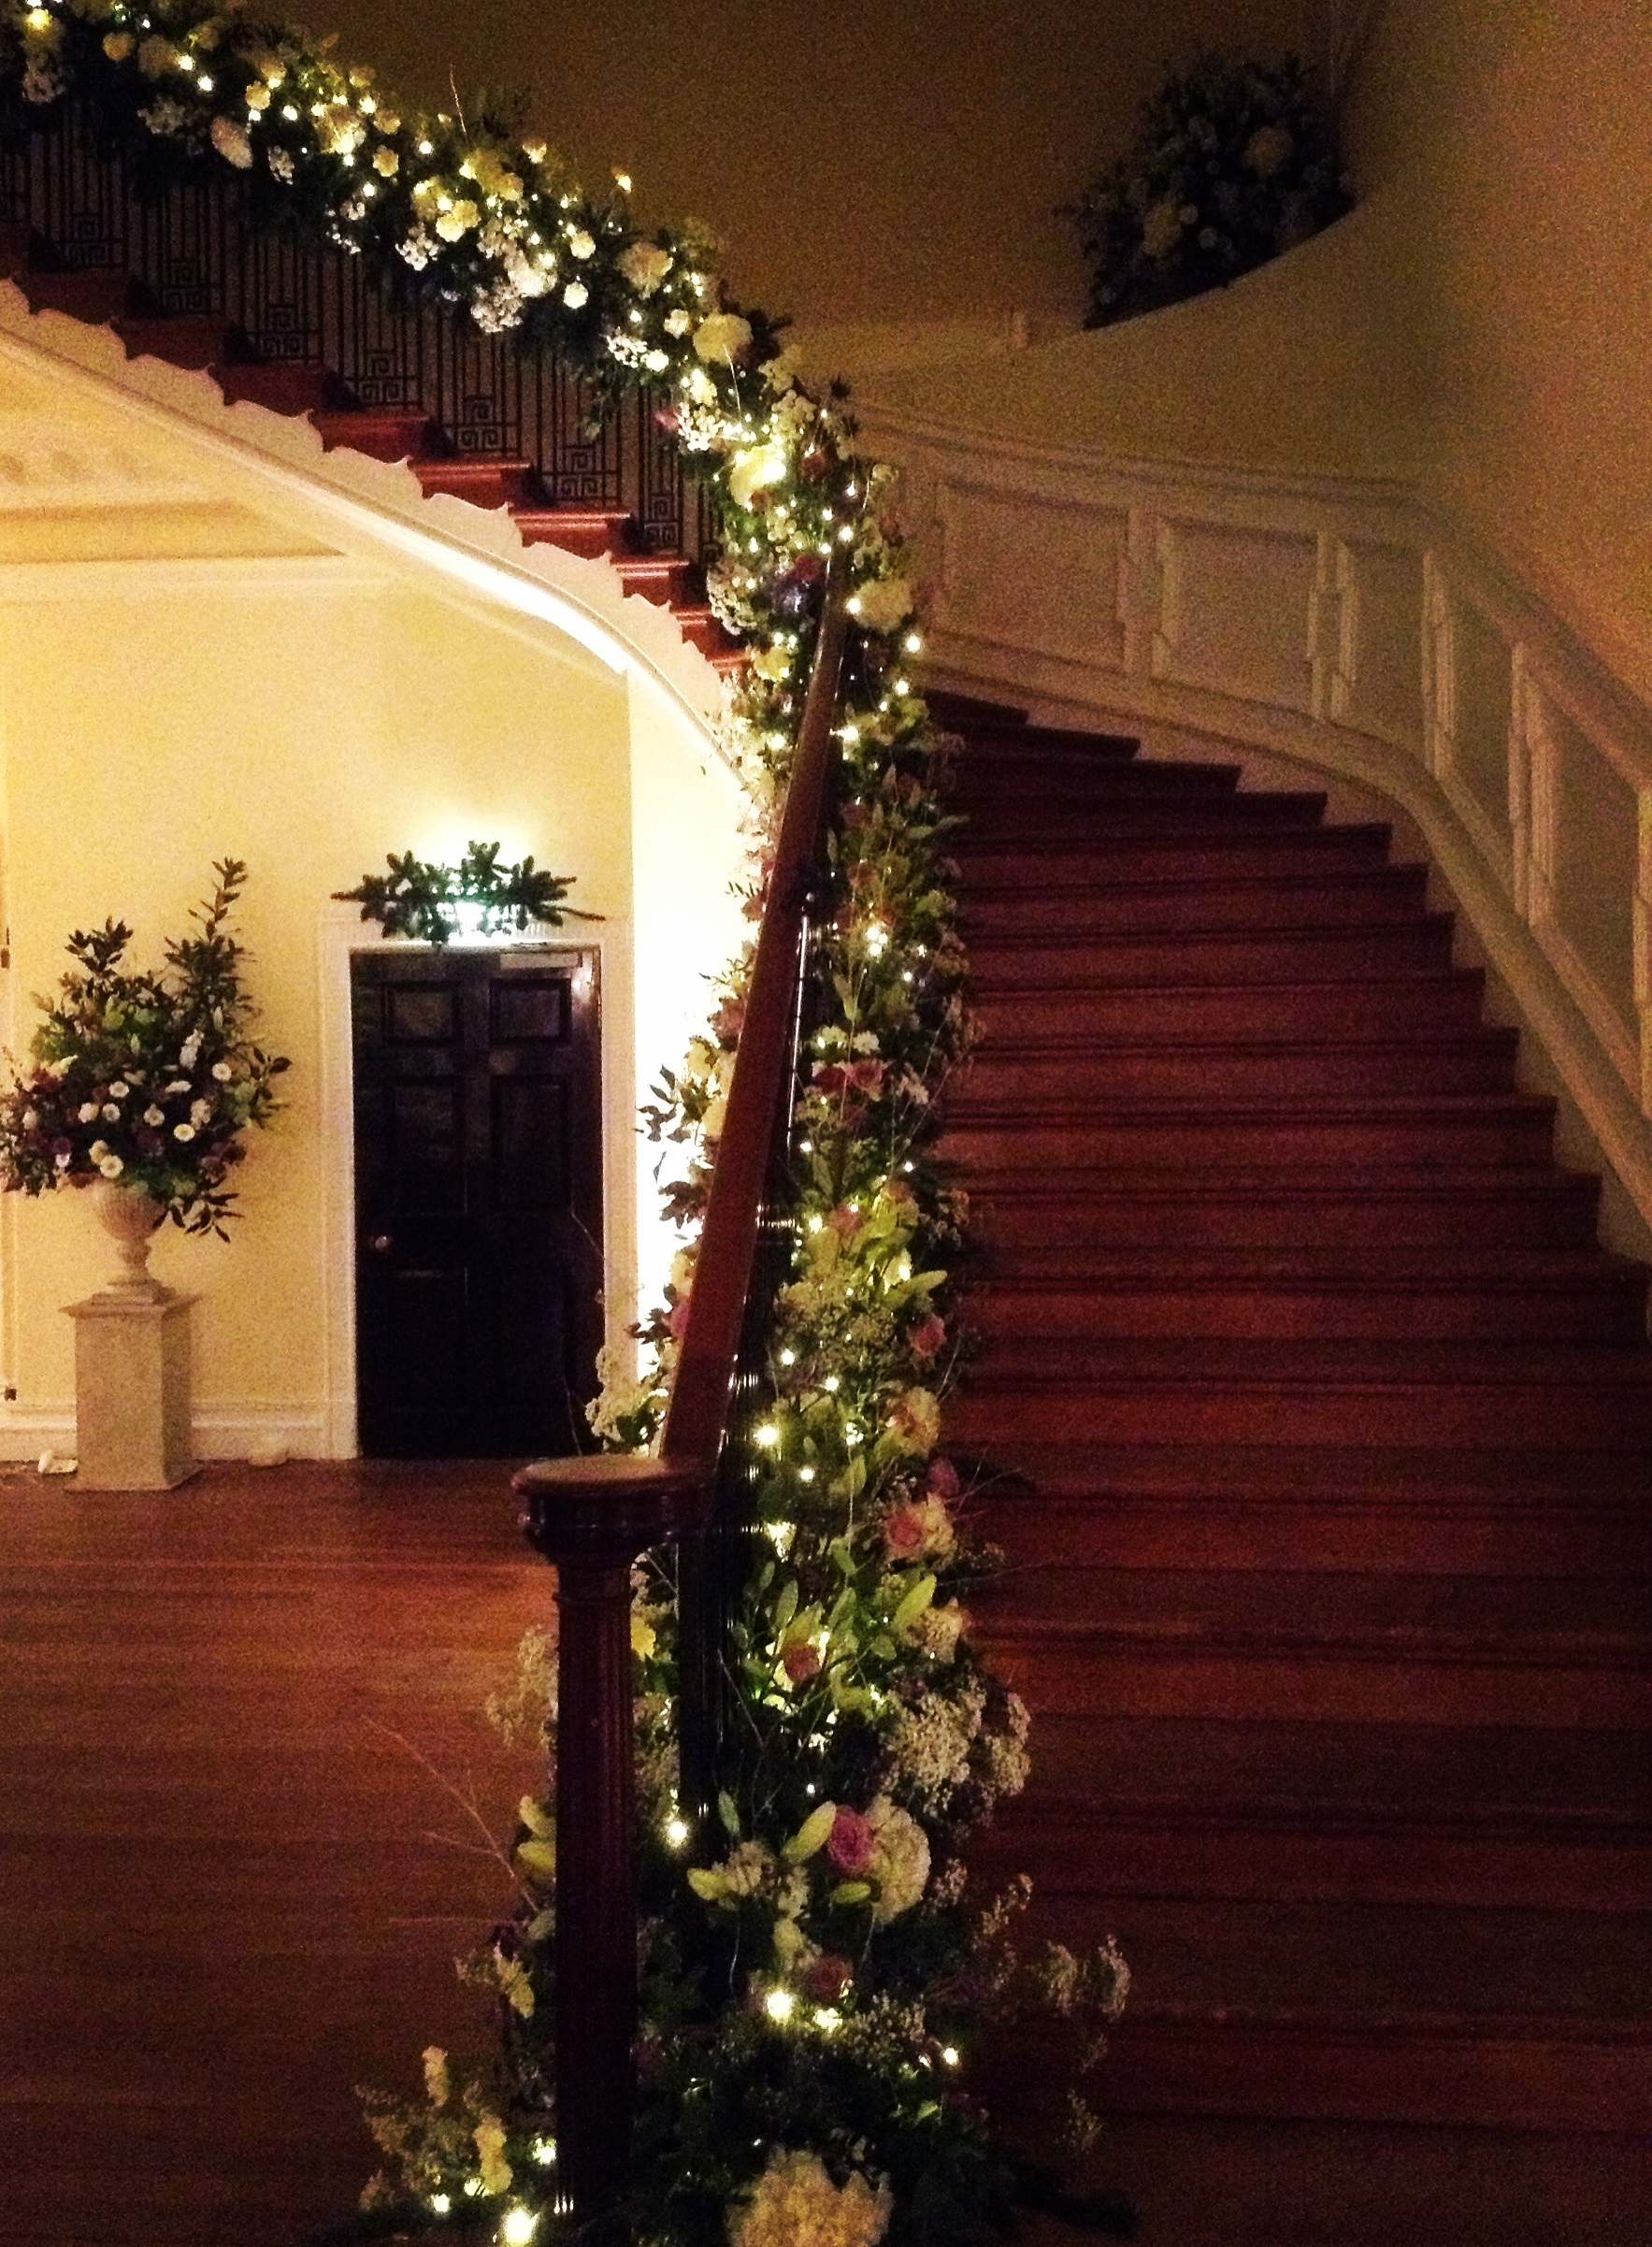 The staircase looking magical as evening comes. Executed by Paul Hervey-Brookes, Sue Robinson, Tracey Kennard and Andy McIndoe.